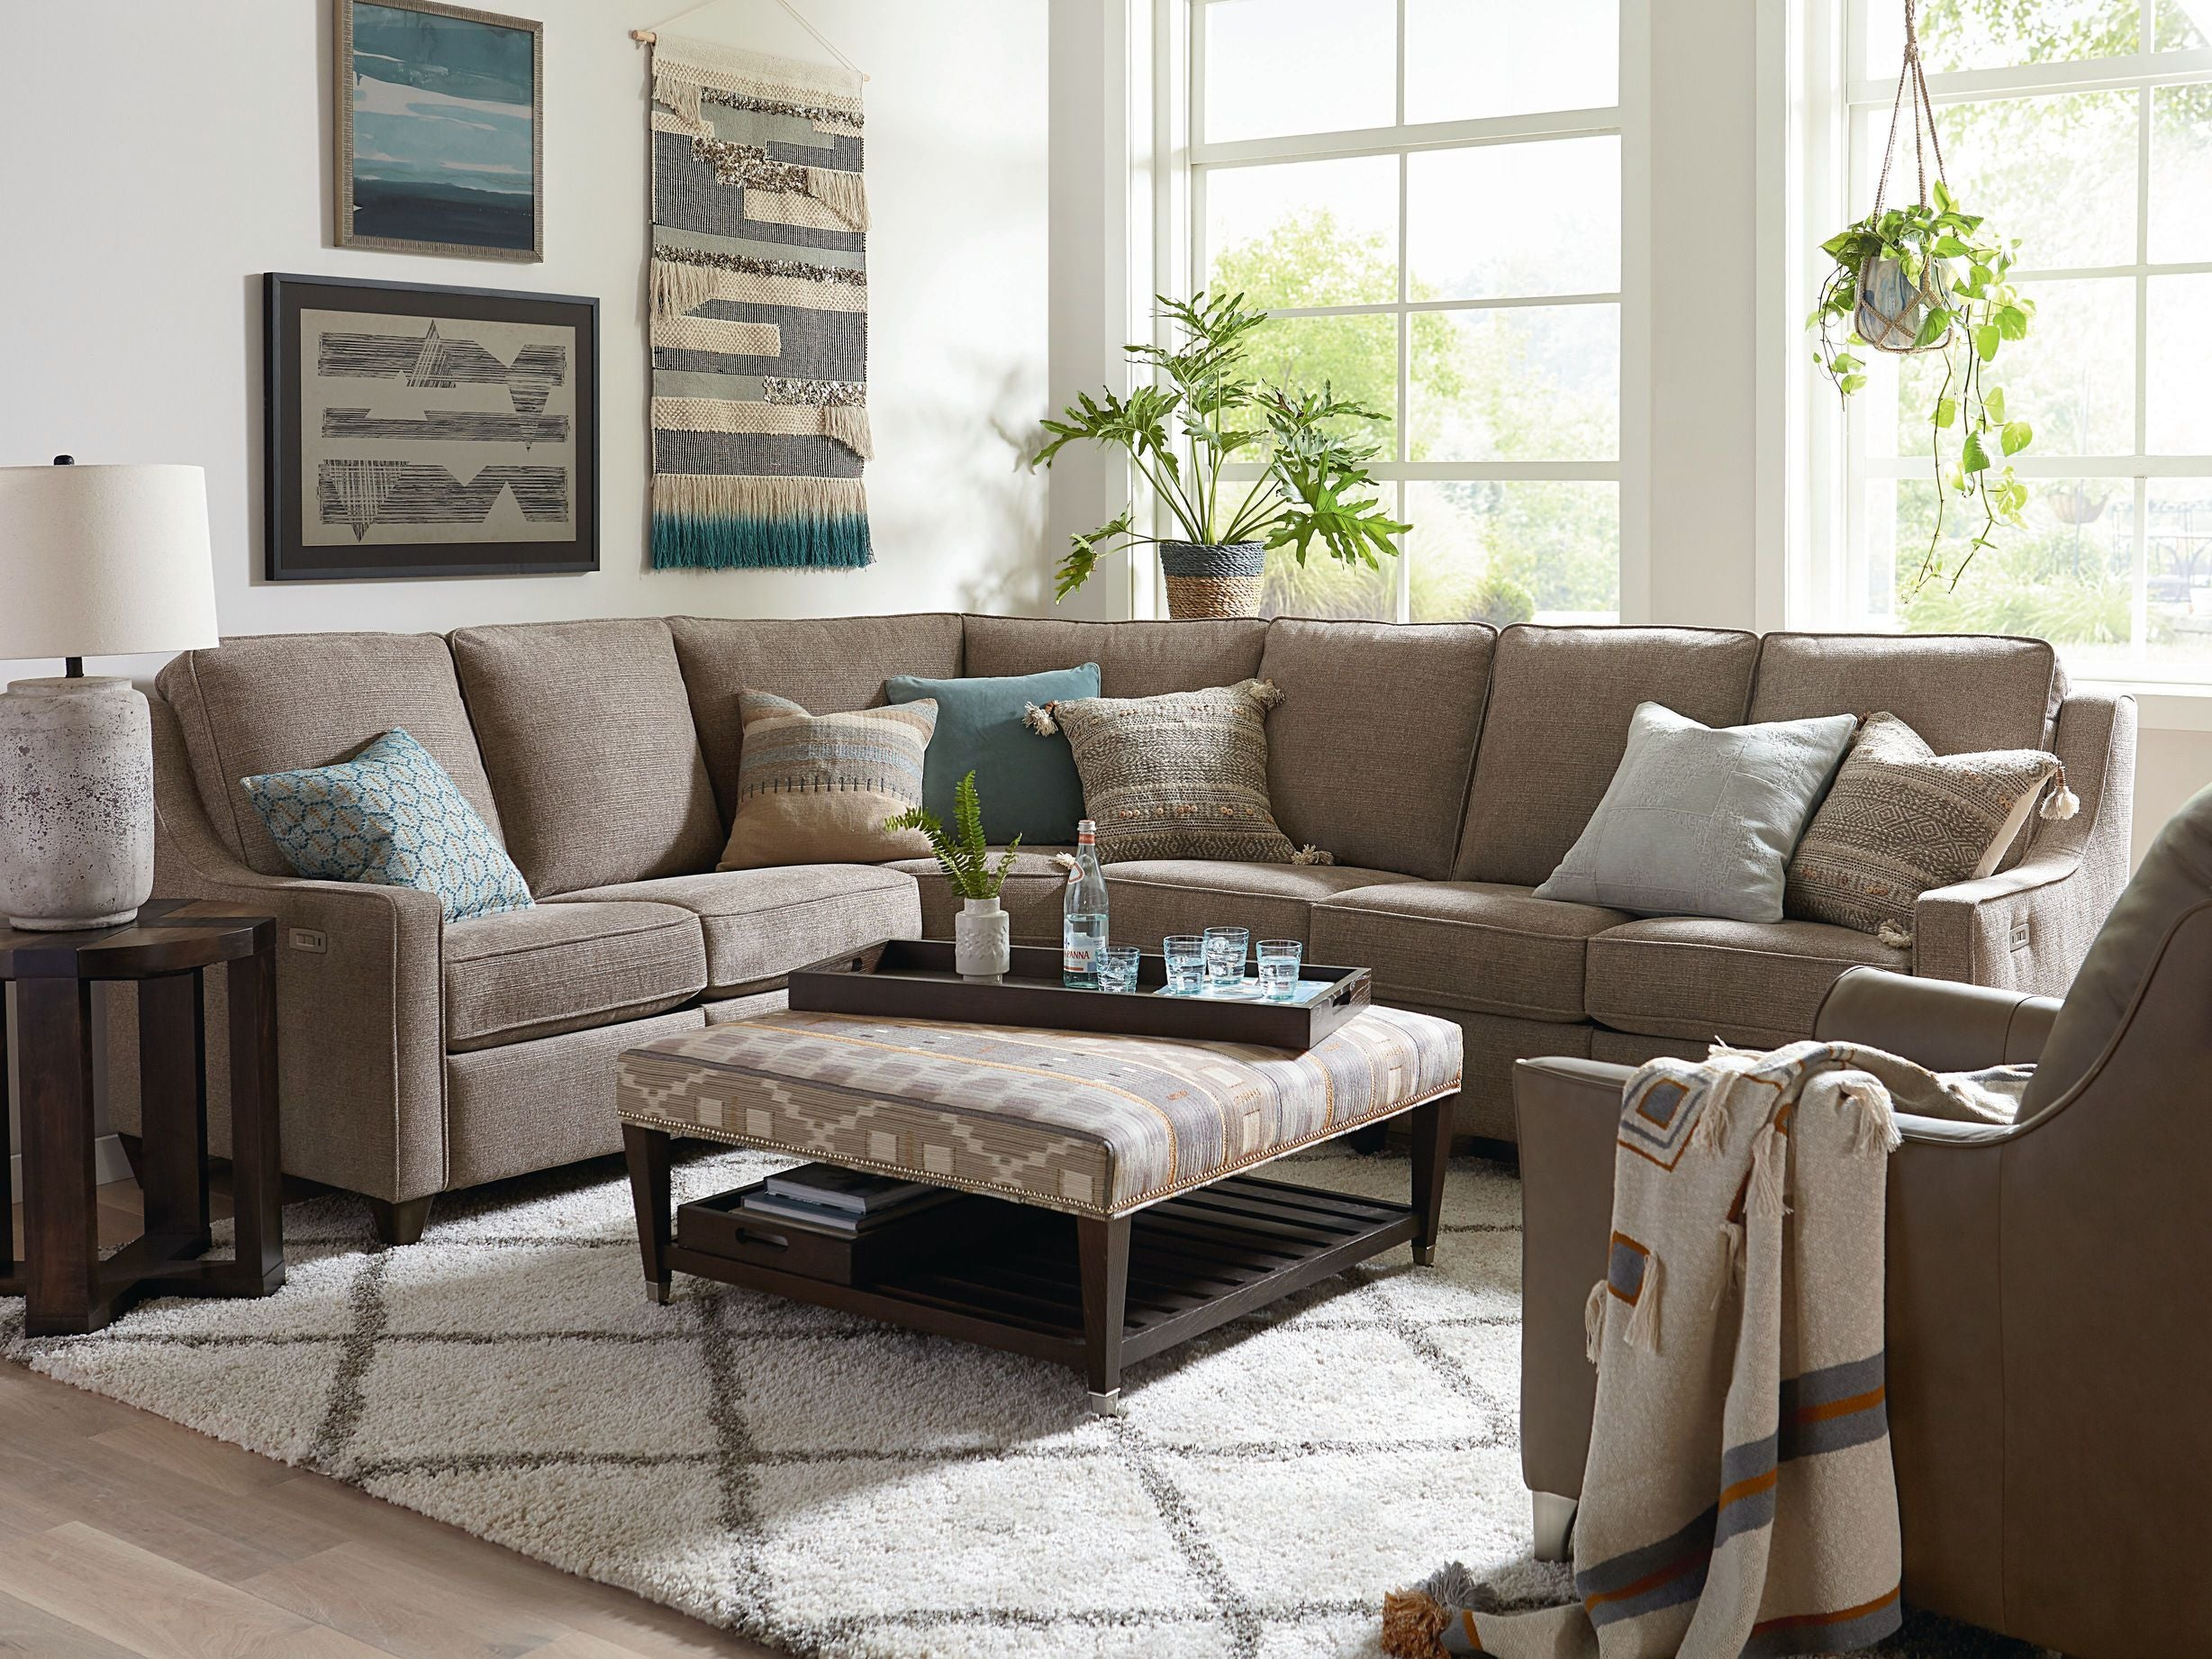 At Home Home Decor Jobs Types Of Wood